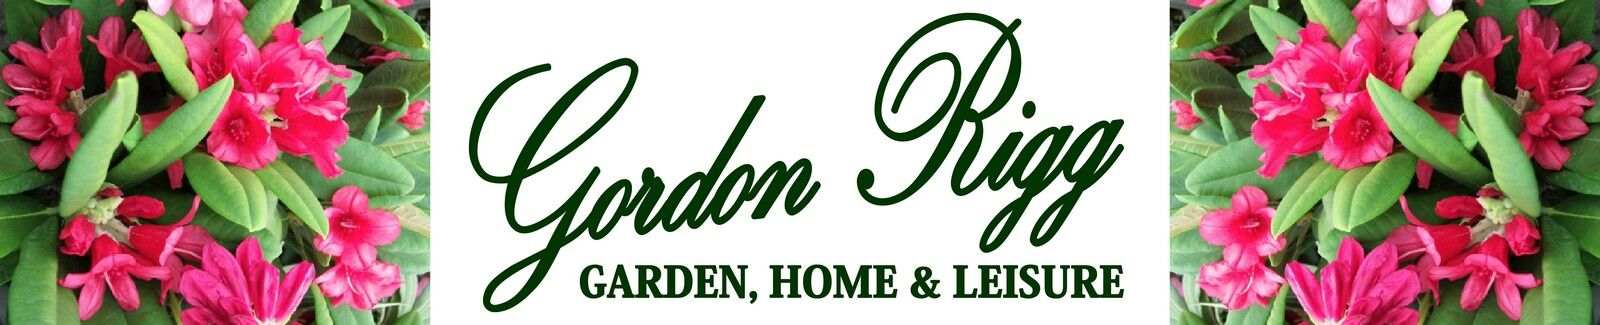 Gordon Rigg Garden, Home & Leisure